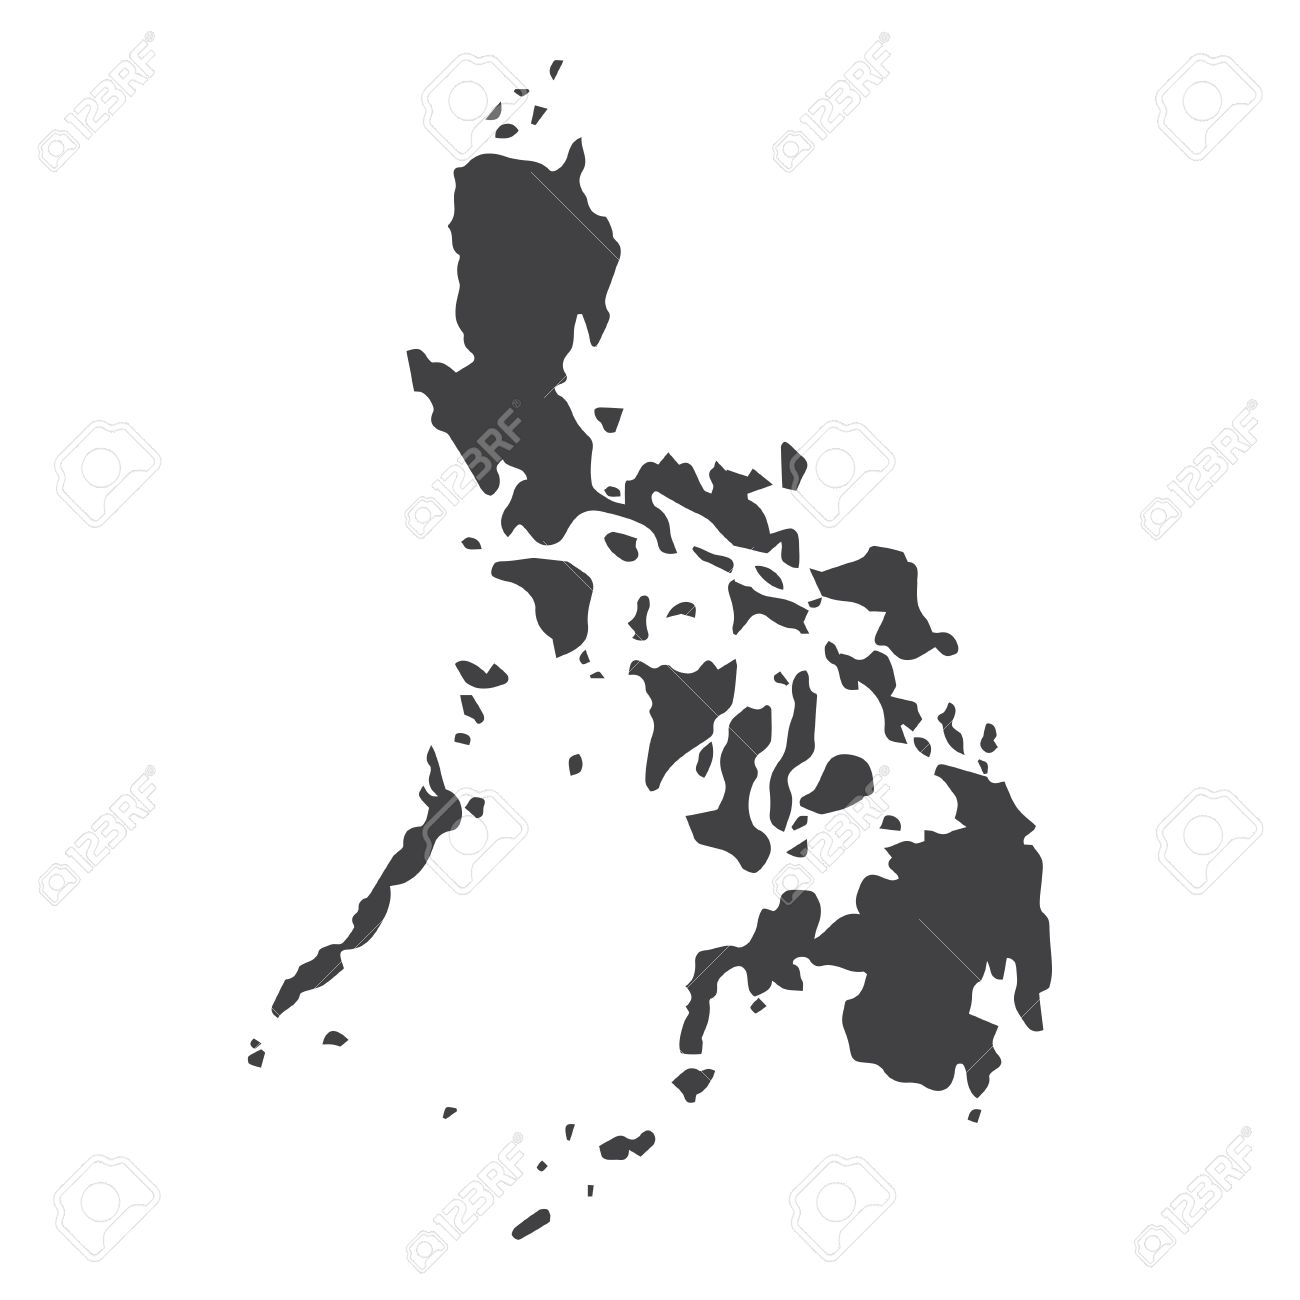 Philippine Map Black Philippines Map In Black On A White Background. Vector